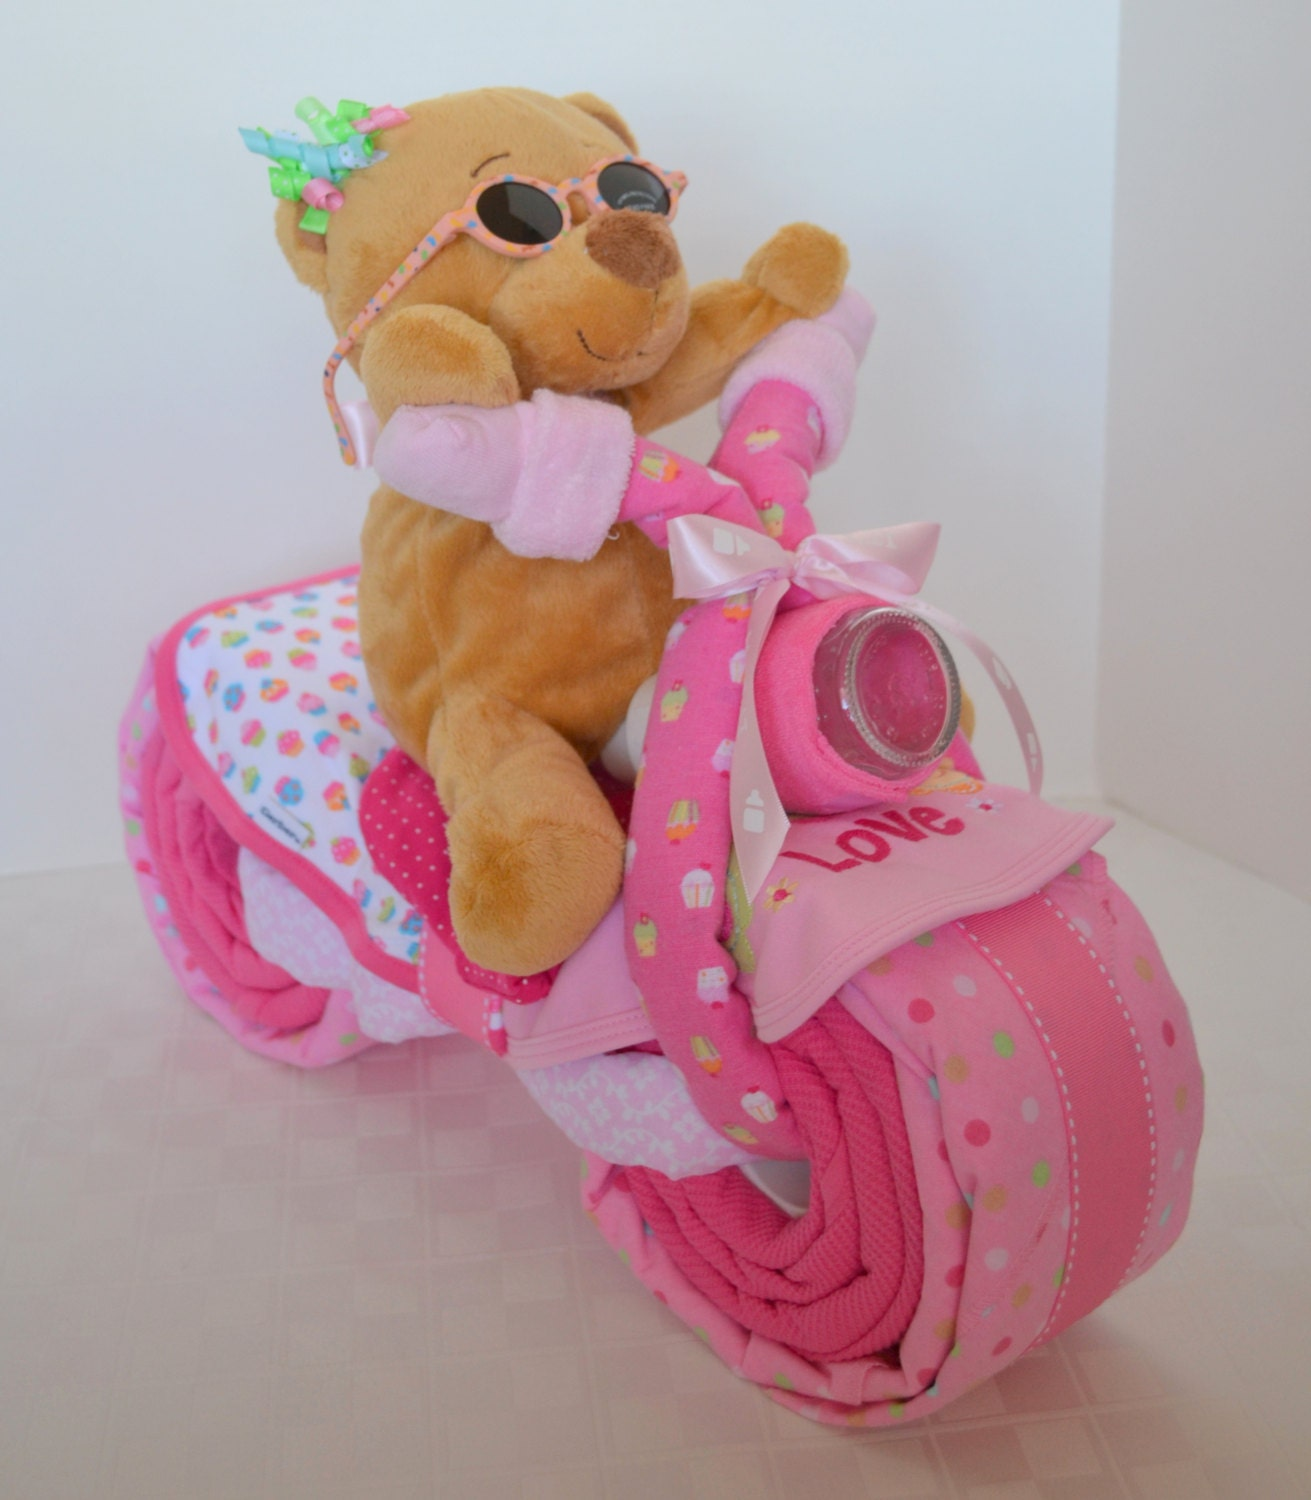 instructions on how to make a motorcycle diaper cake